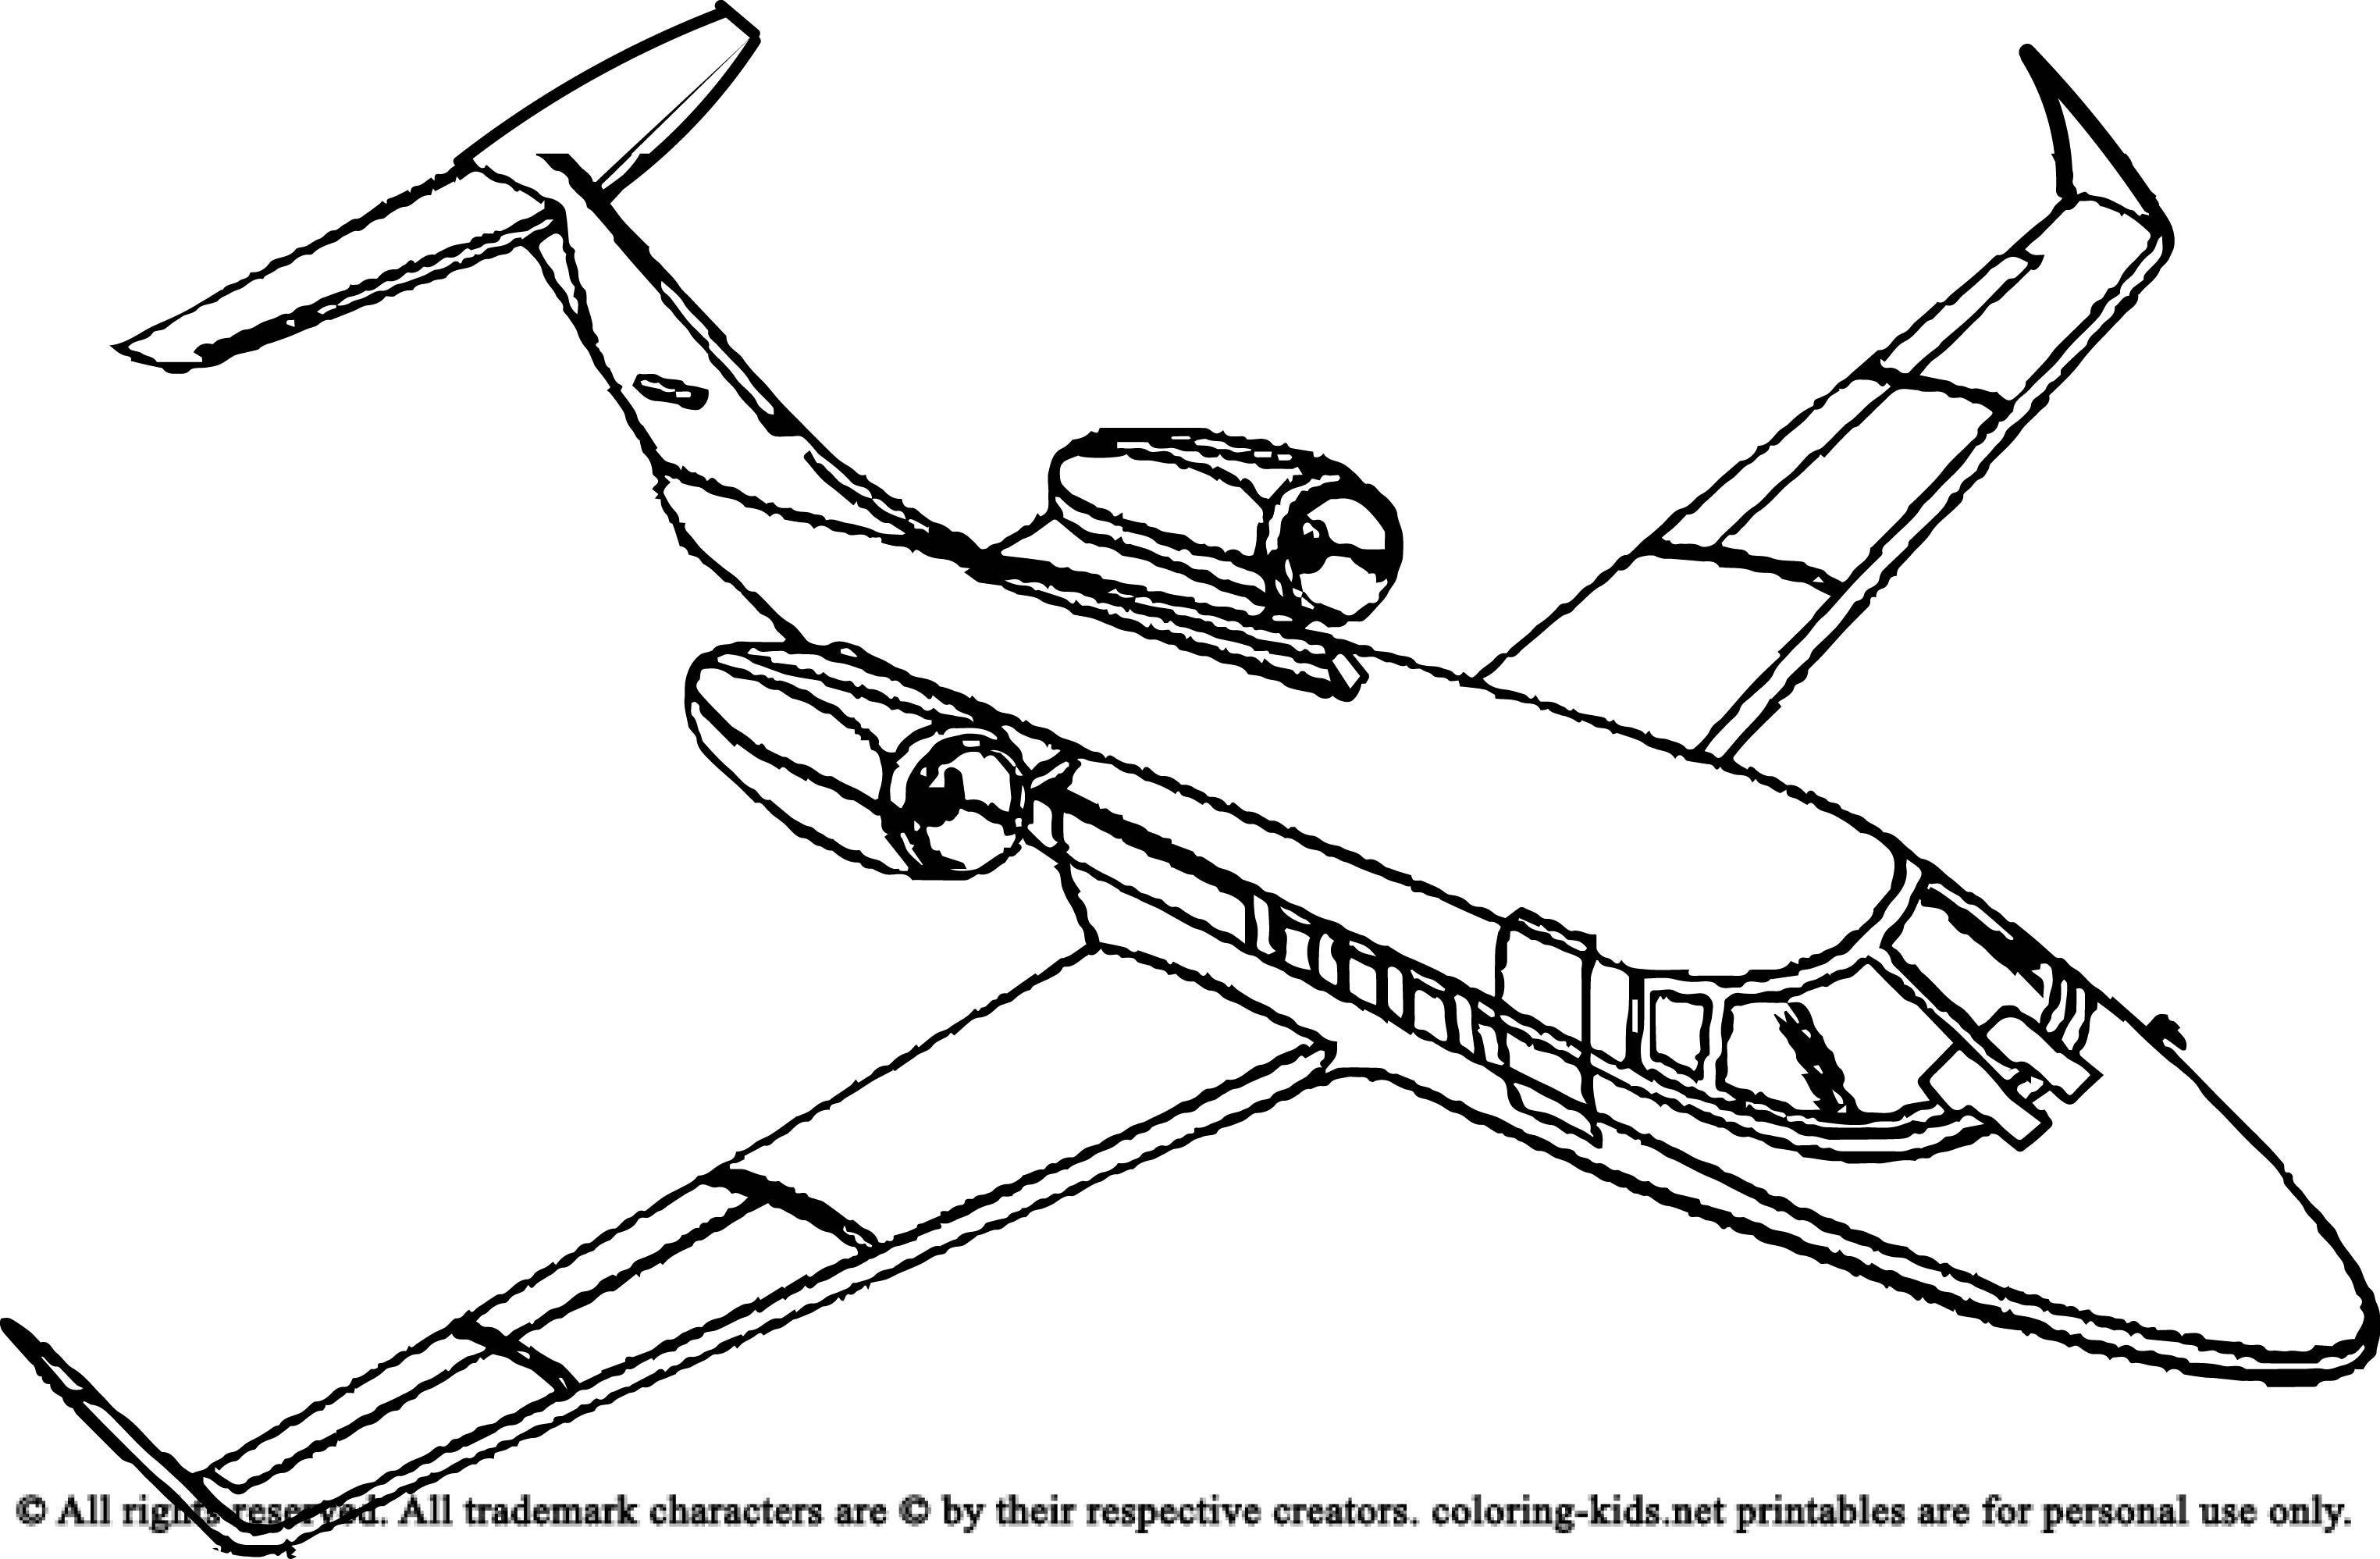 Airplane Coloring Page Airplane Coloring Book New Image 22 Jet Plane Coloring Pagescoloring Entitlementtrap Com Coloriage A Imprimer Coloriage Enfant Coloring Pages